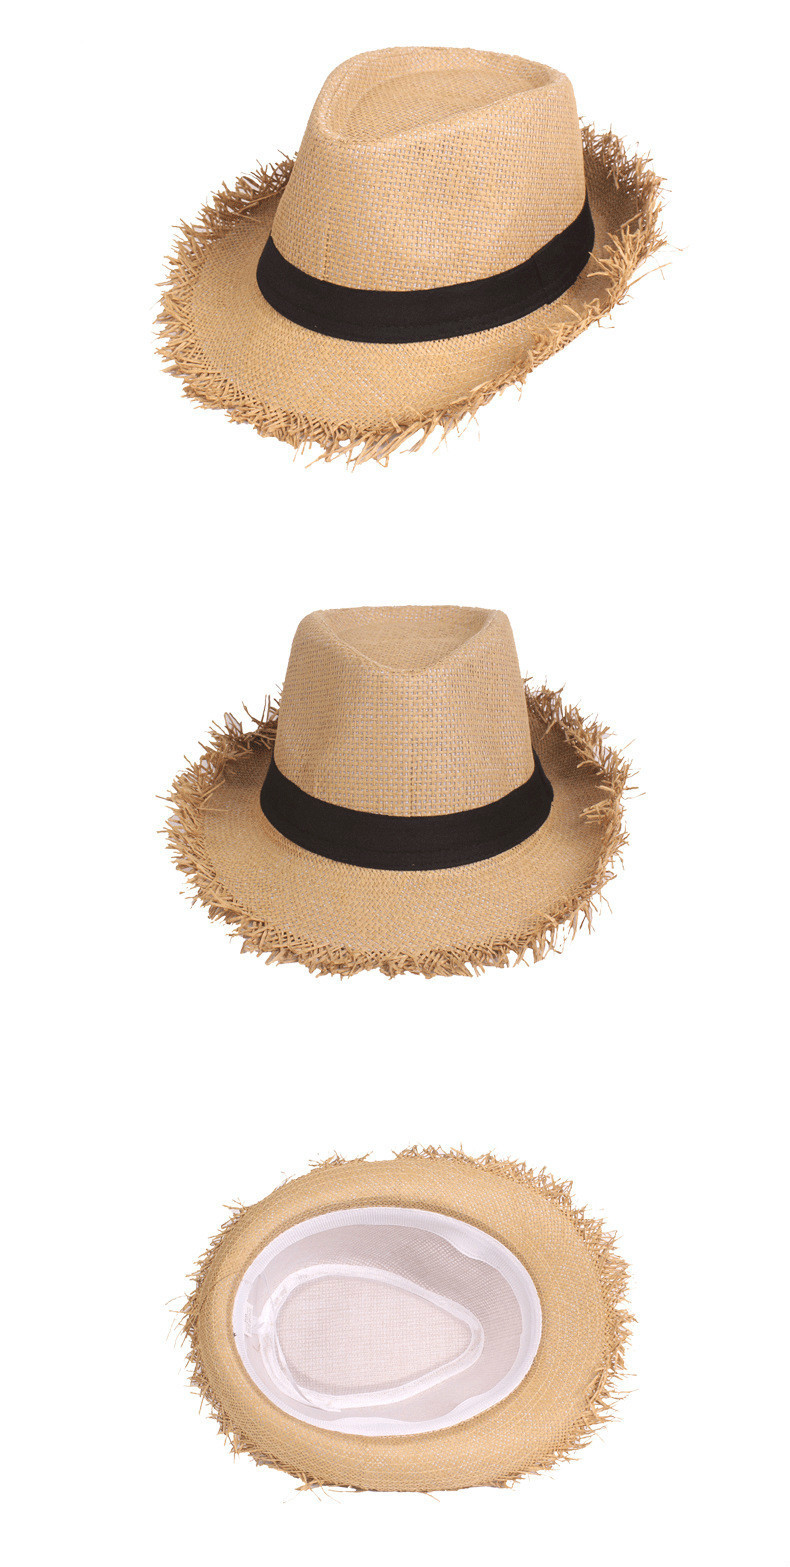 Sun Hat Summer Solid Color Fashion Summer Travel Round Holiday Sun Hat Beach Cowboy Hat